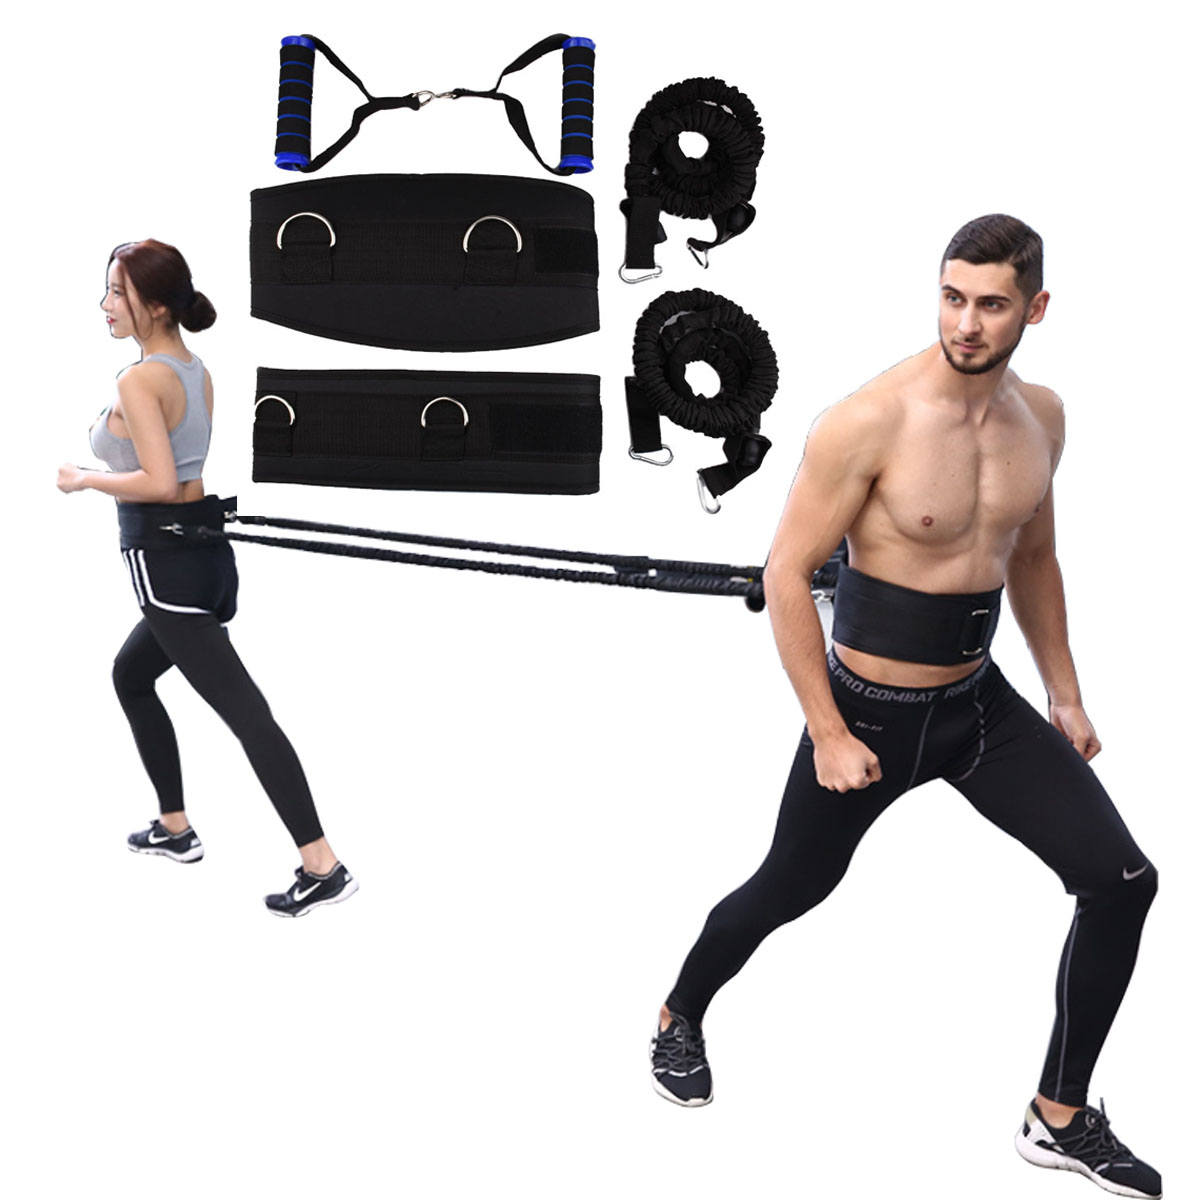 Resistance Bands Waist Running Jump String Exercise For Basketball Football crossfit Strength Training Speed Agility Pull Rope